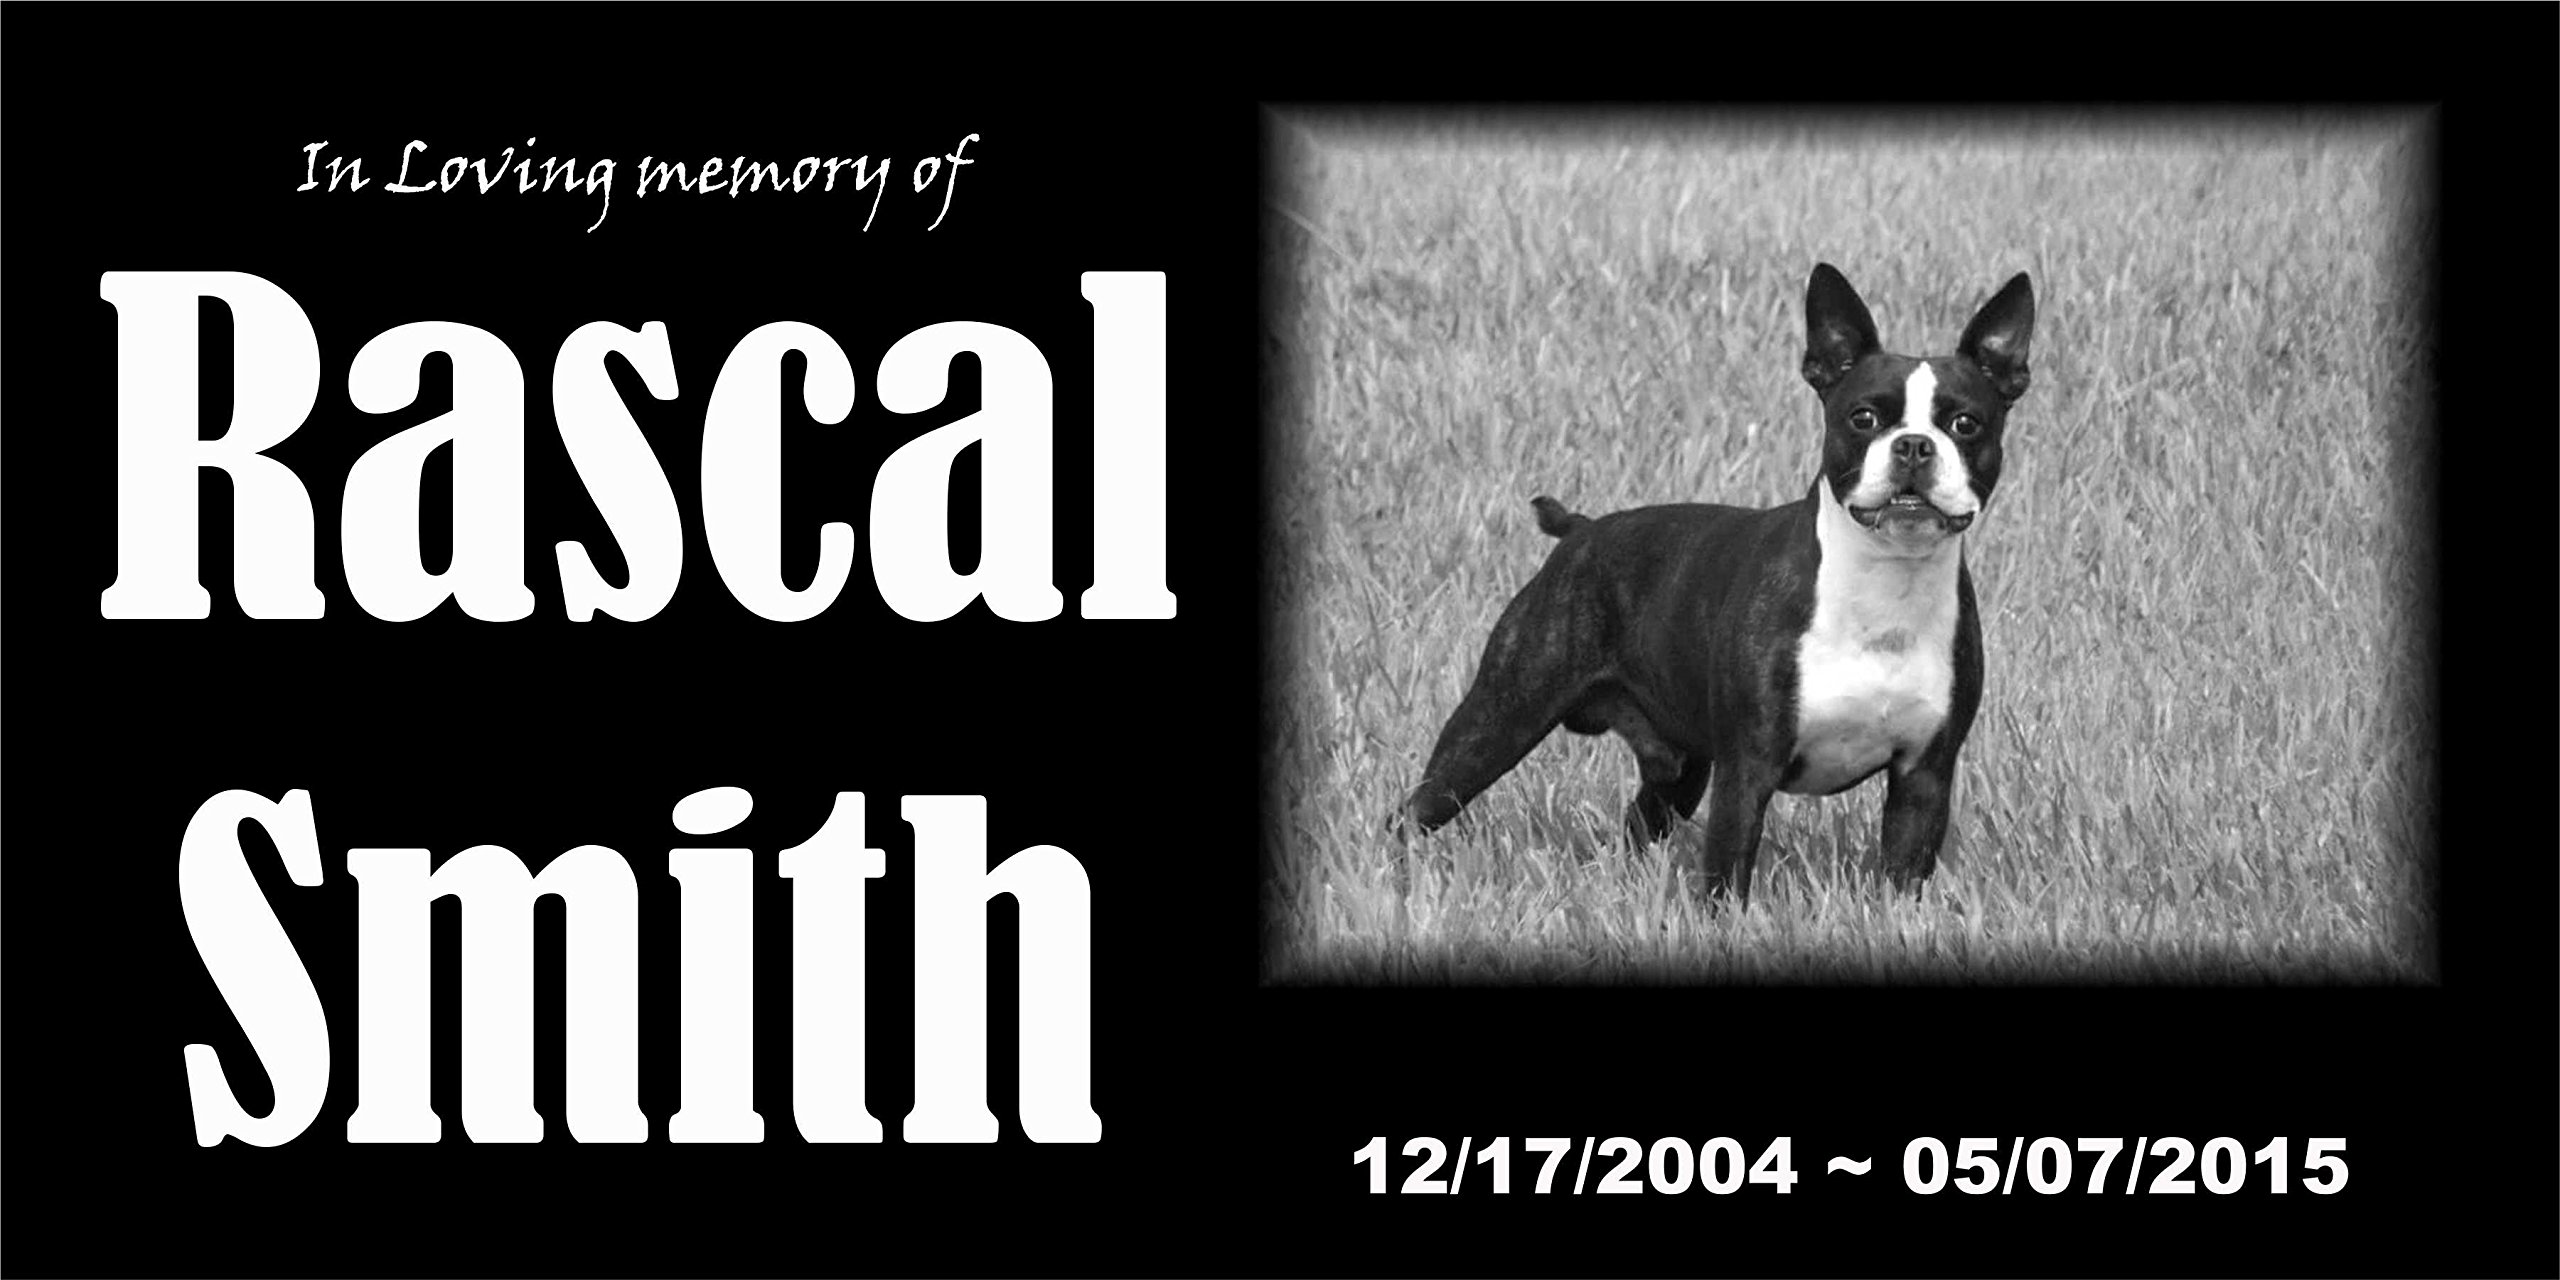 Personalized Pet Stone Memorial Marker Granite Marker Dog Cat Horse Bird Human 6'' X 12'' Boxer Personalised